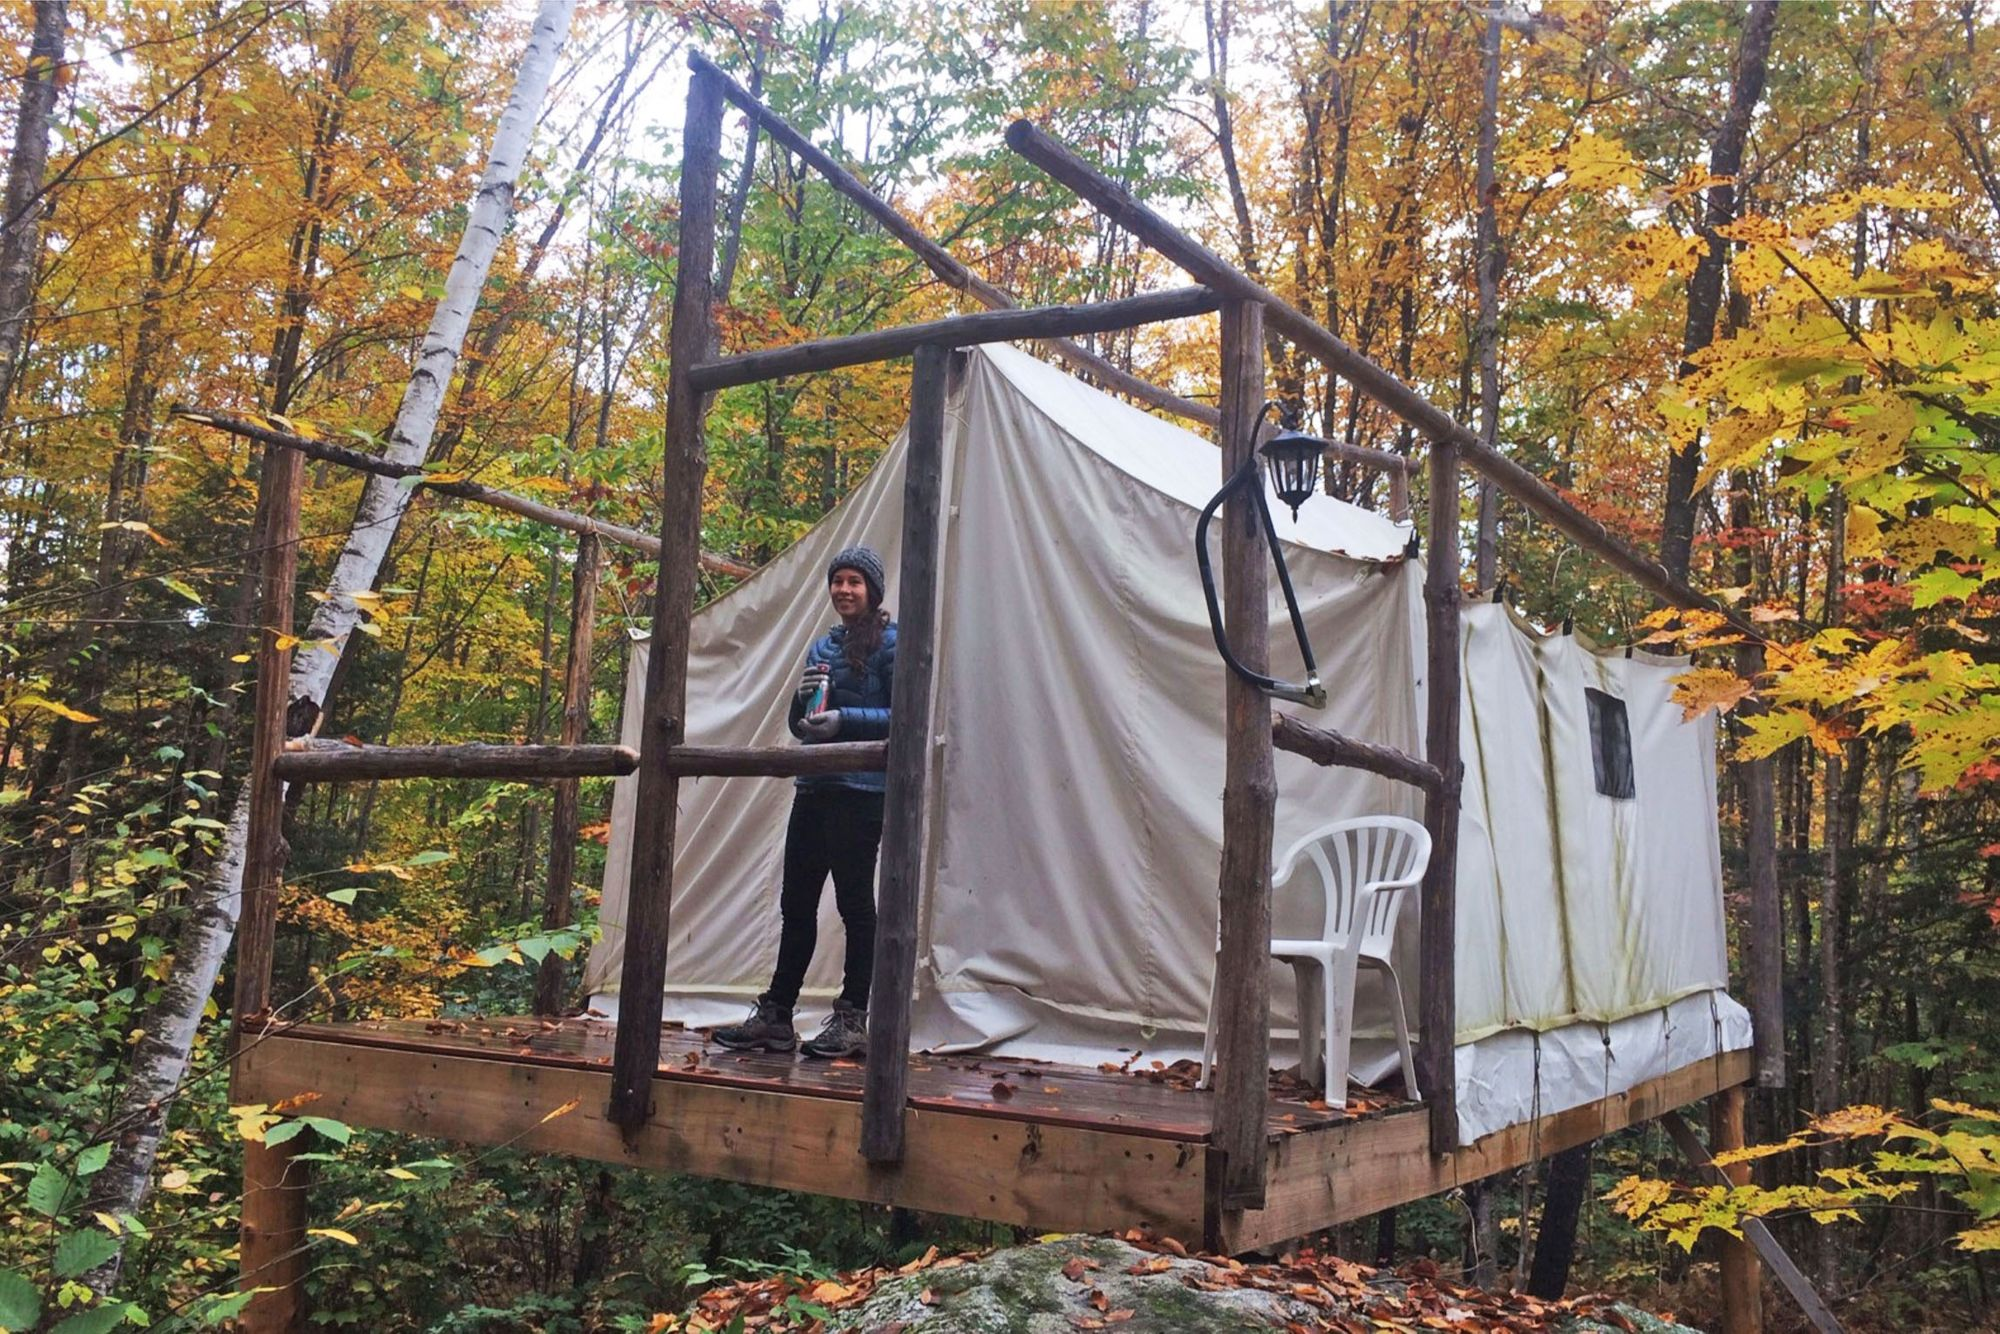 Tent Cabin Camping in New Hampshire Should be Your Next Outdoor Adventure